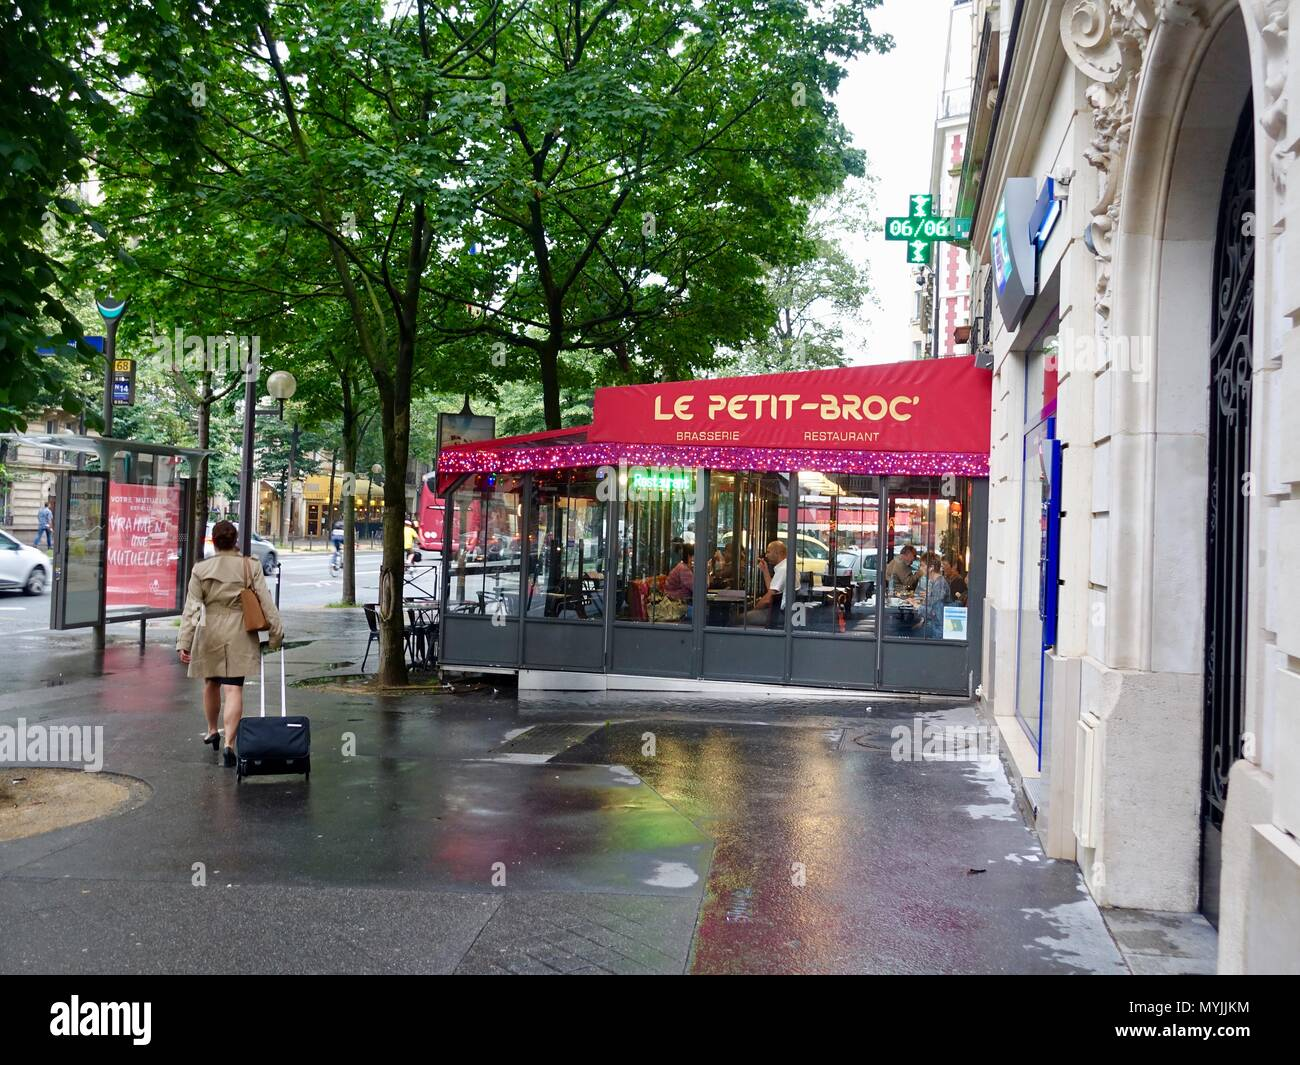 Woman wearing a trench coat and pulling a suitcase, walking down wet sidewalk in front of a restaurant, Montparnasse, Paris, France - Stock Image